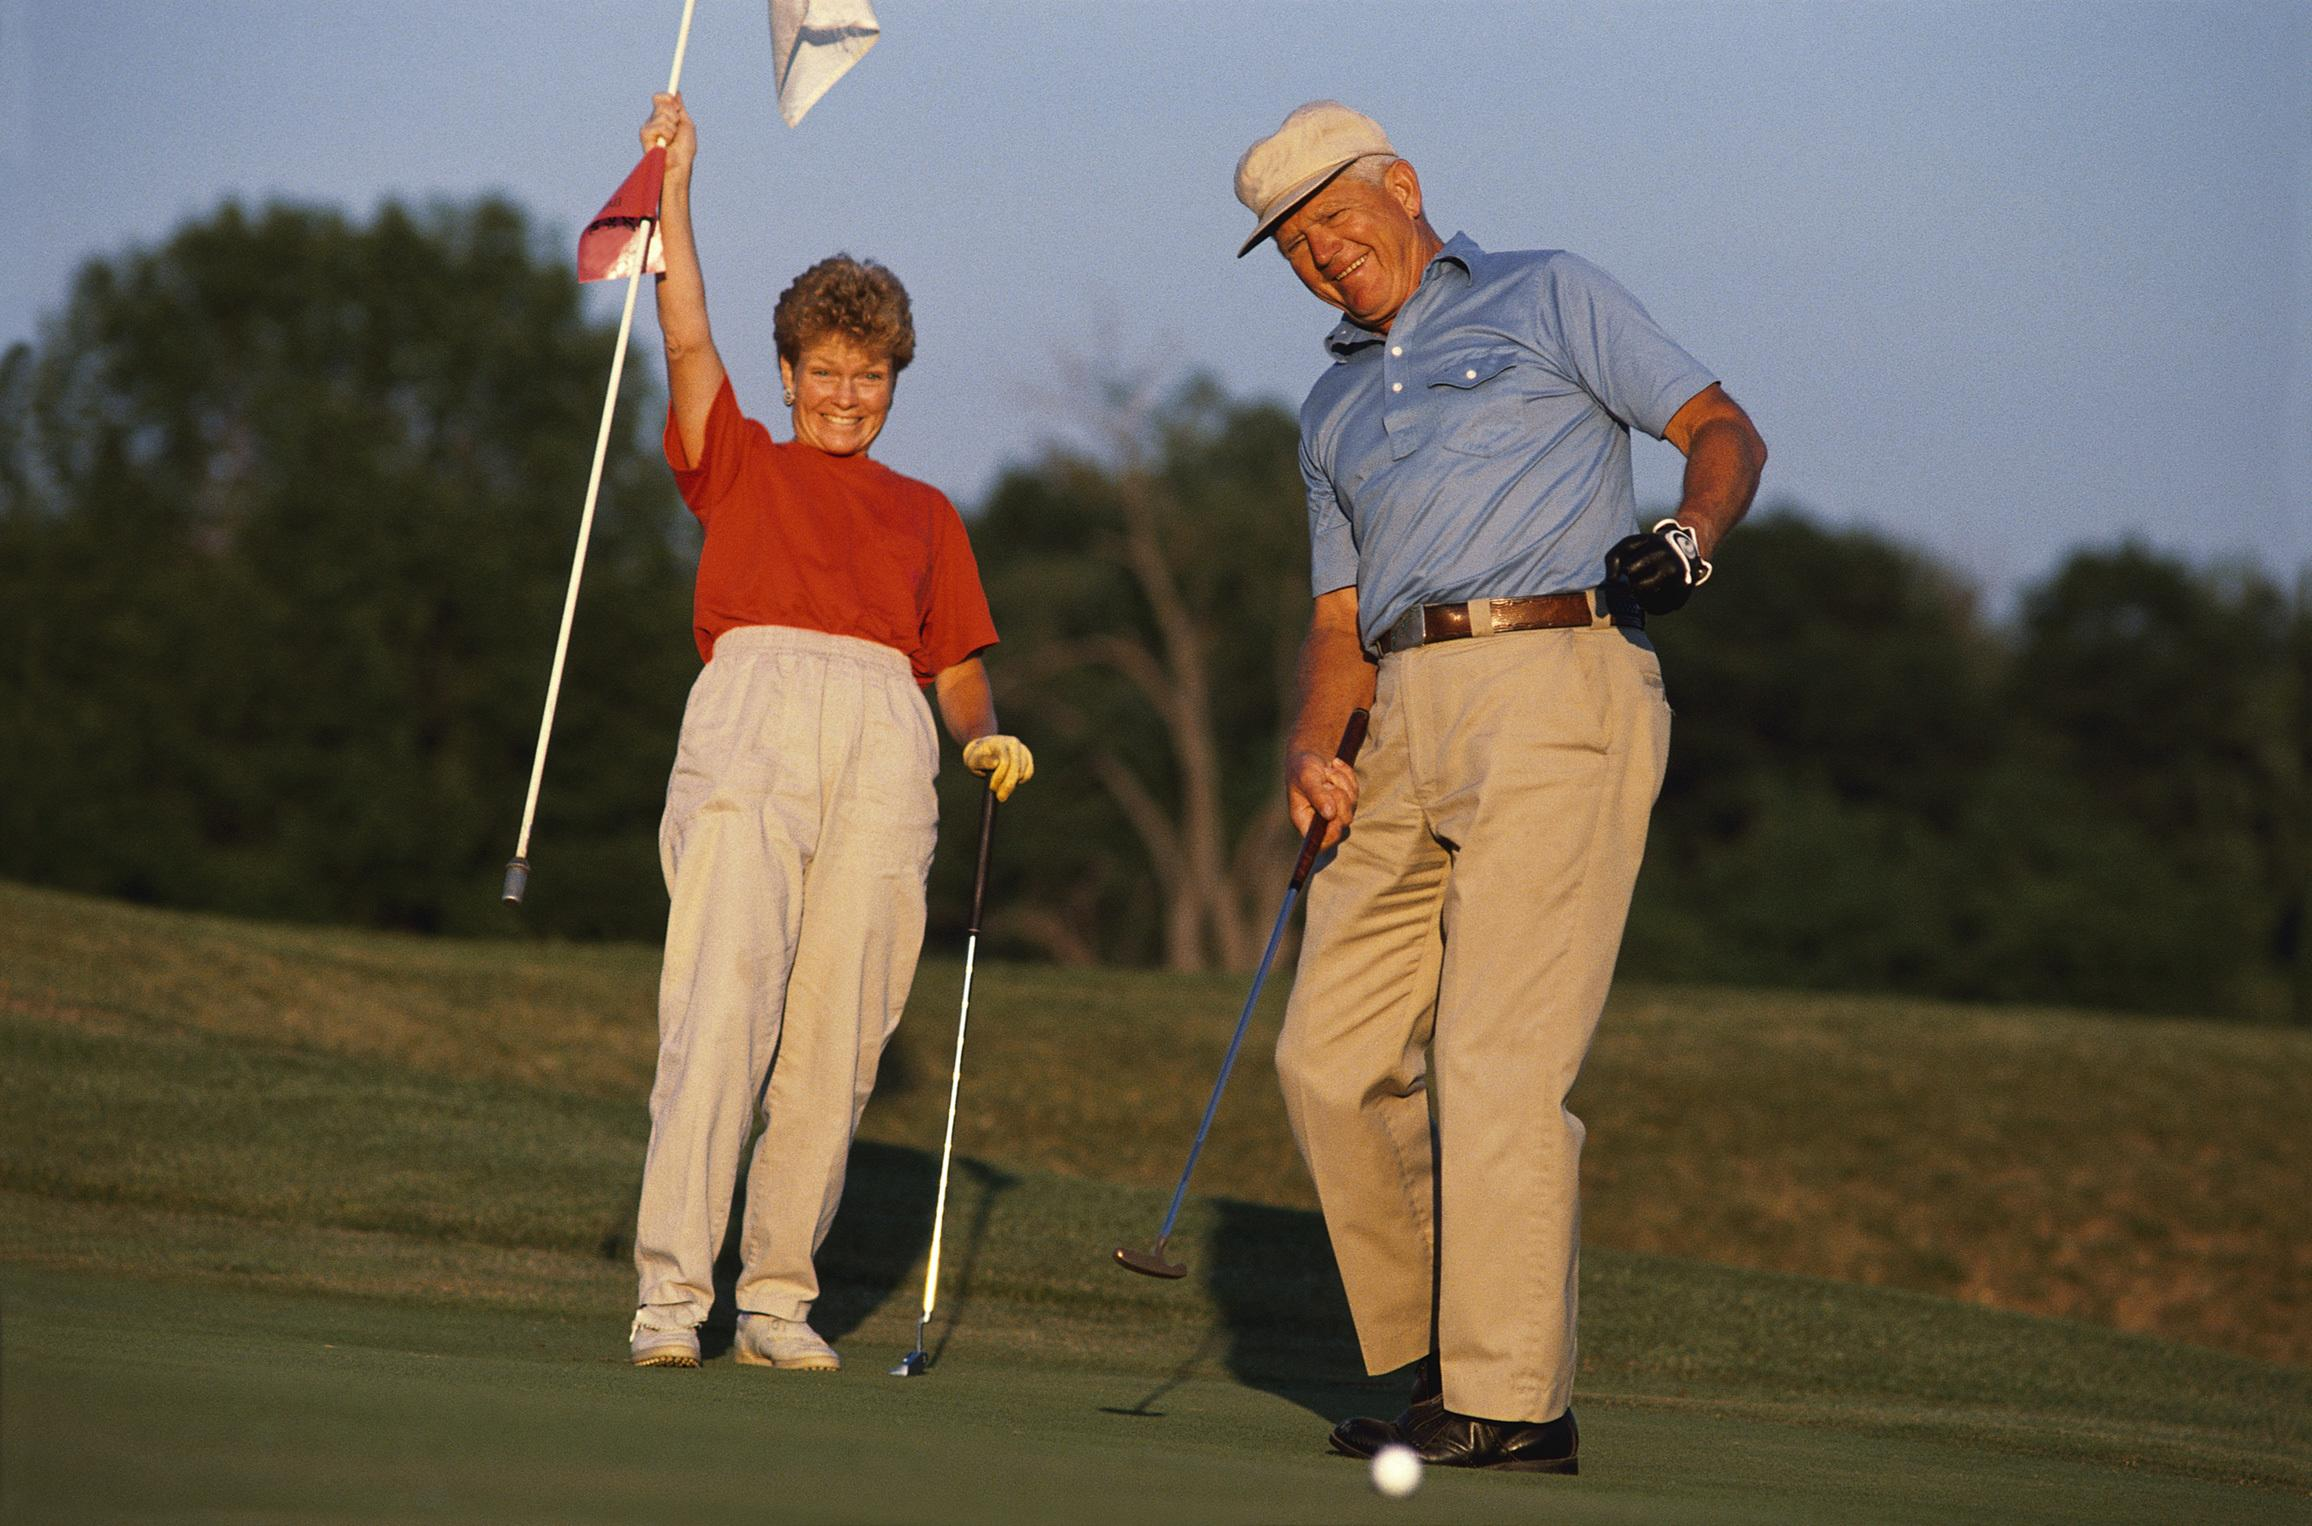 <p>Figures from the Office for National Statistics show that on average nearly a fifth of the money spent by people aged 65-74 is on leisure. This includes everything from the cinema and theatre to golfing and gardening. They spent more on this than on food, energy bills and transport.</p>  <p>A report by Canada Life found that retirees are spending £4,279 a year on having fun - that's more than £1,000 more than they spend on boring essentials, and is a 74% increase over the past ten years. It went on to predict that this trend was set to continue, and that pension freedoms would encourage people to spoil themselves a bit more in retirement</p>